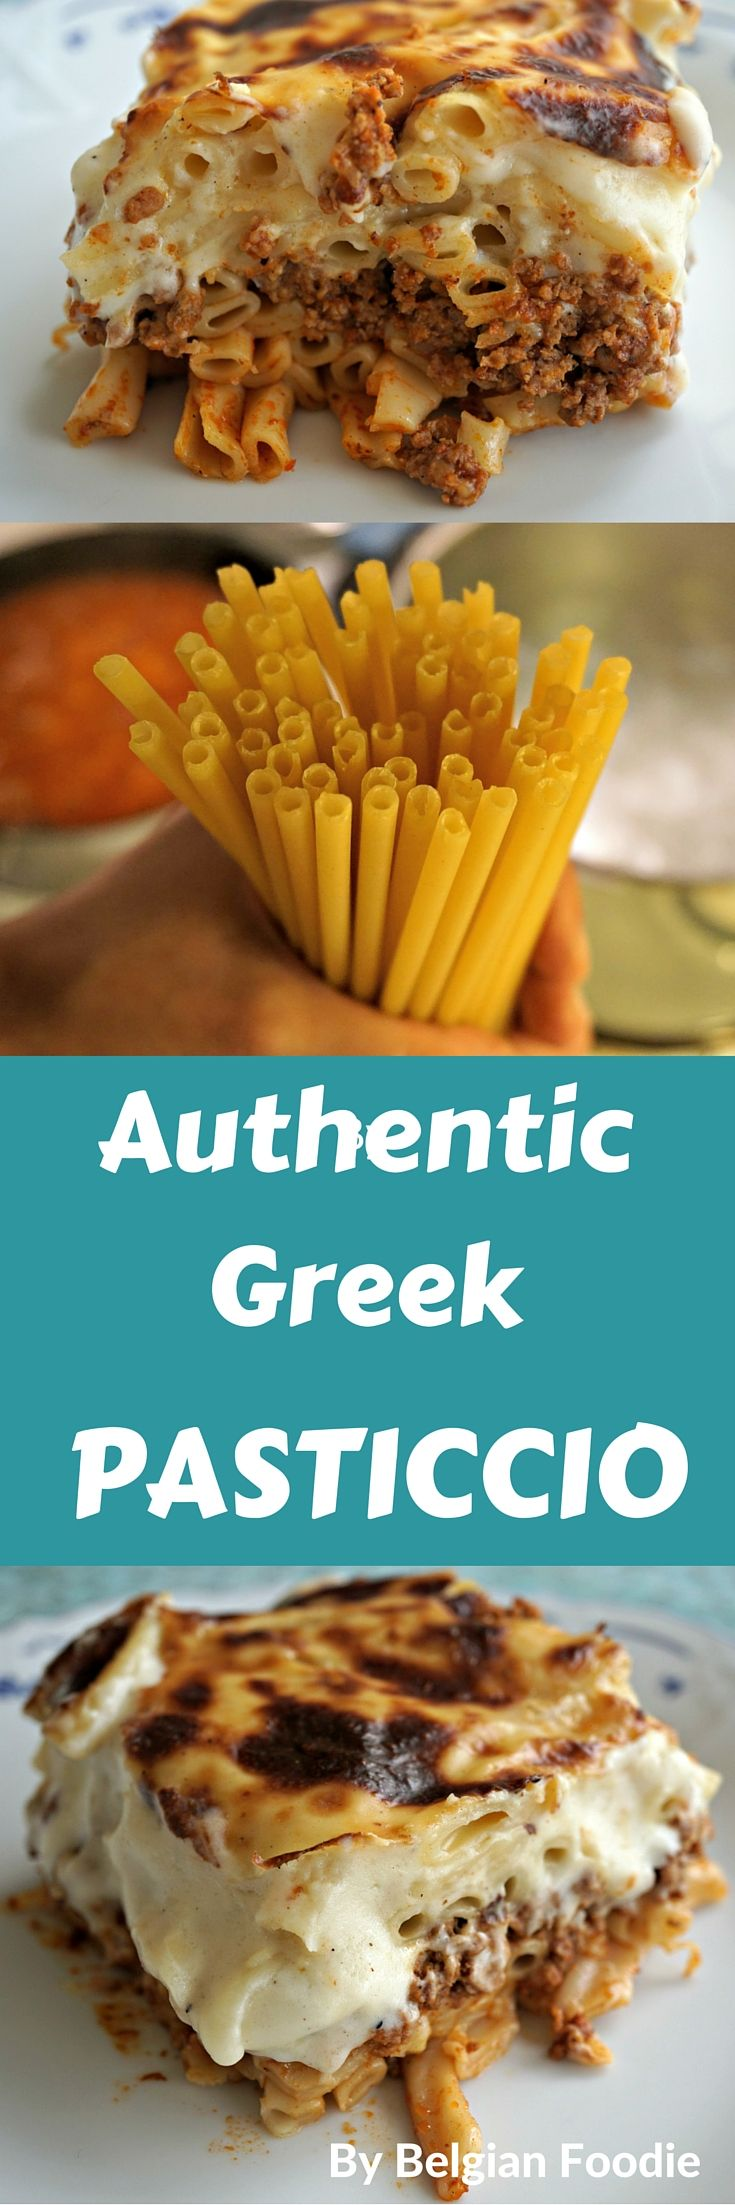 1521 best Yummy Greek images on Pinterest | Cooking food, Drink and ...